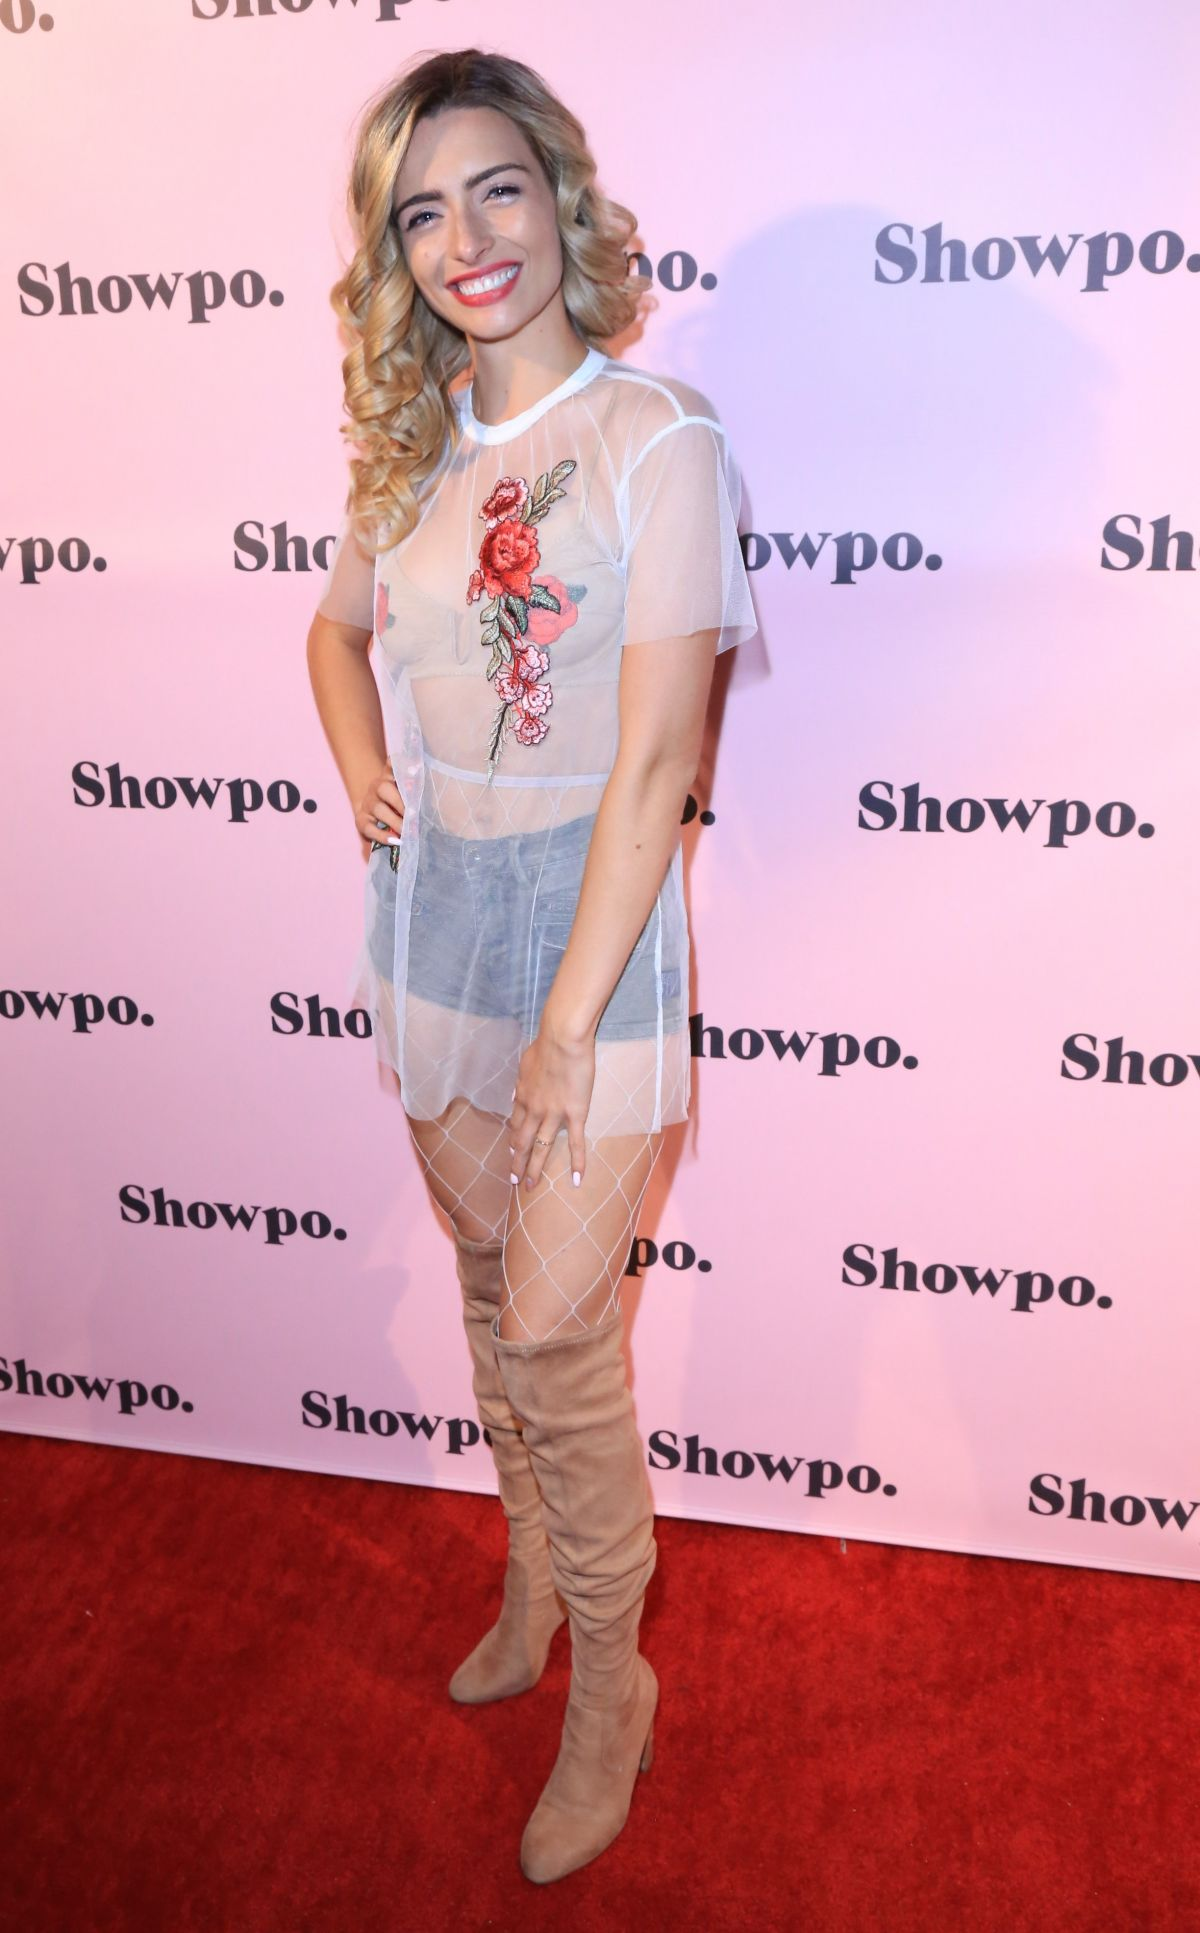 KIRSTEN COLLINS at Showpo US Launch Party in Los Angeles 08/24/2017